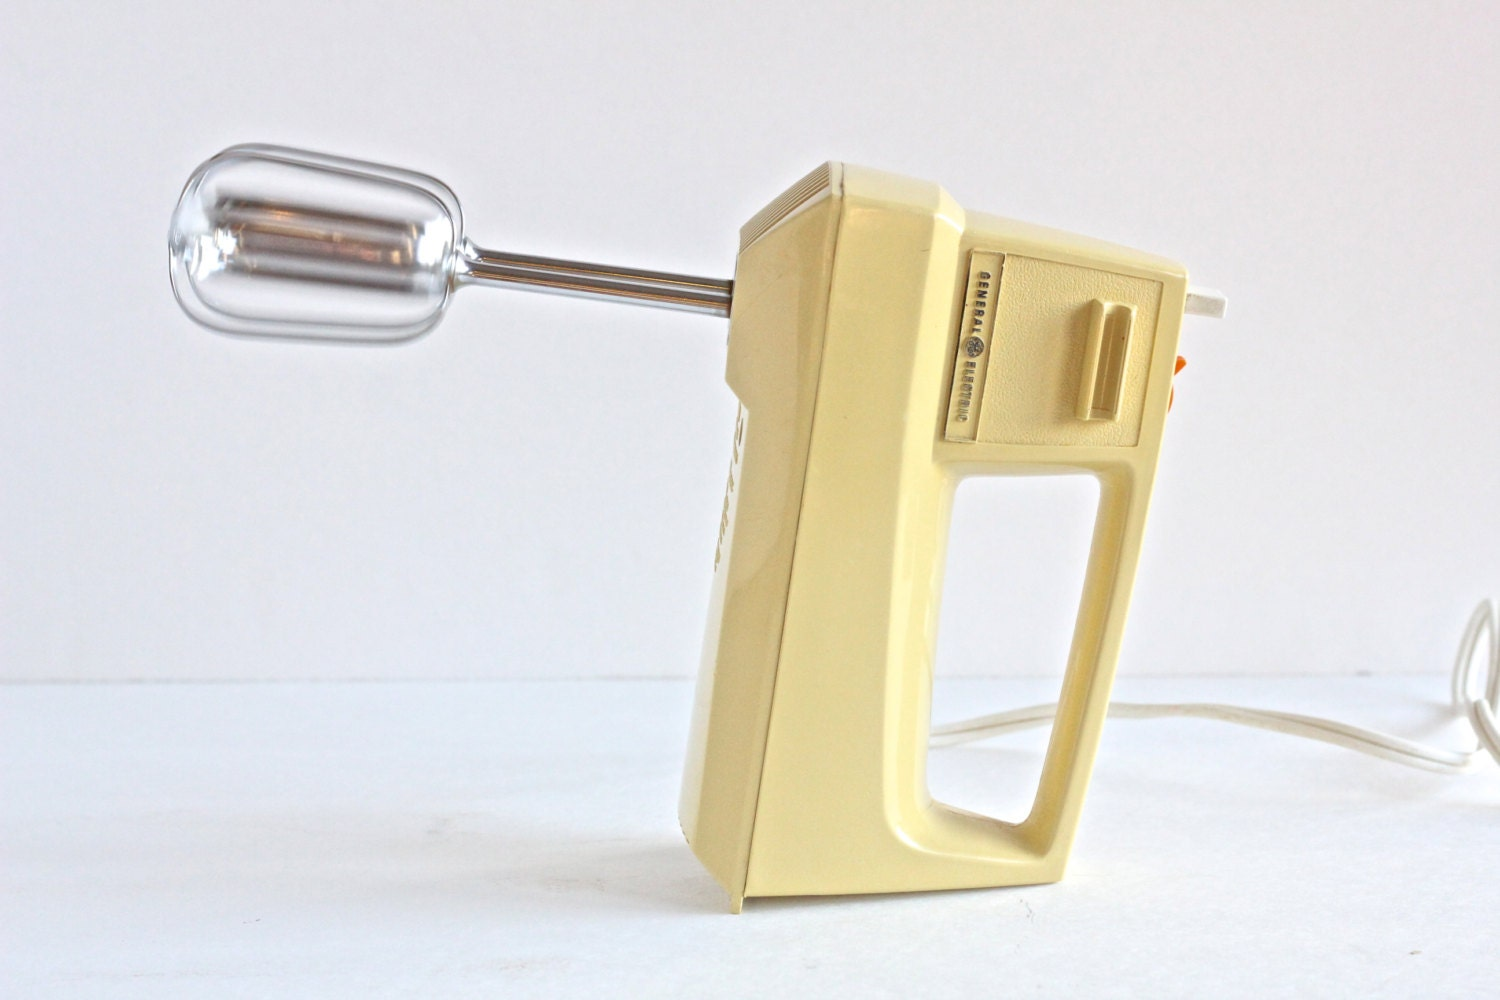 Electric Mixers Made In Usa ~ Vintage general electric hand mixer by thewrinklyelephant